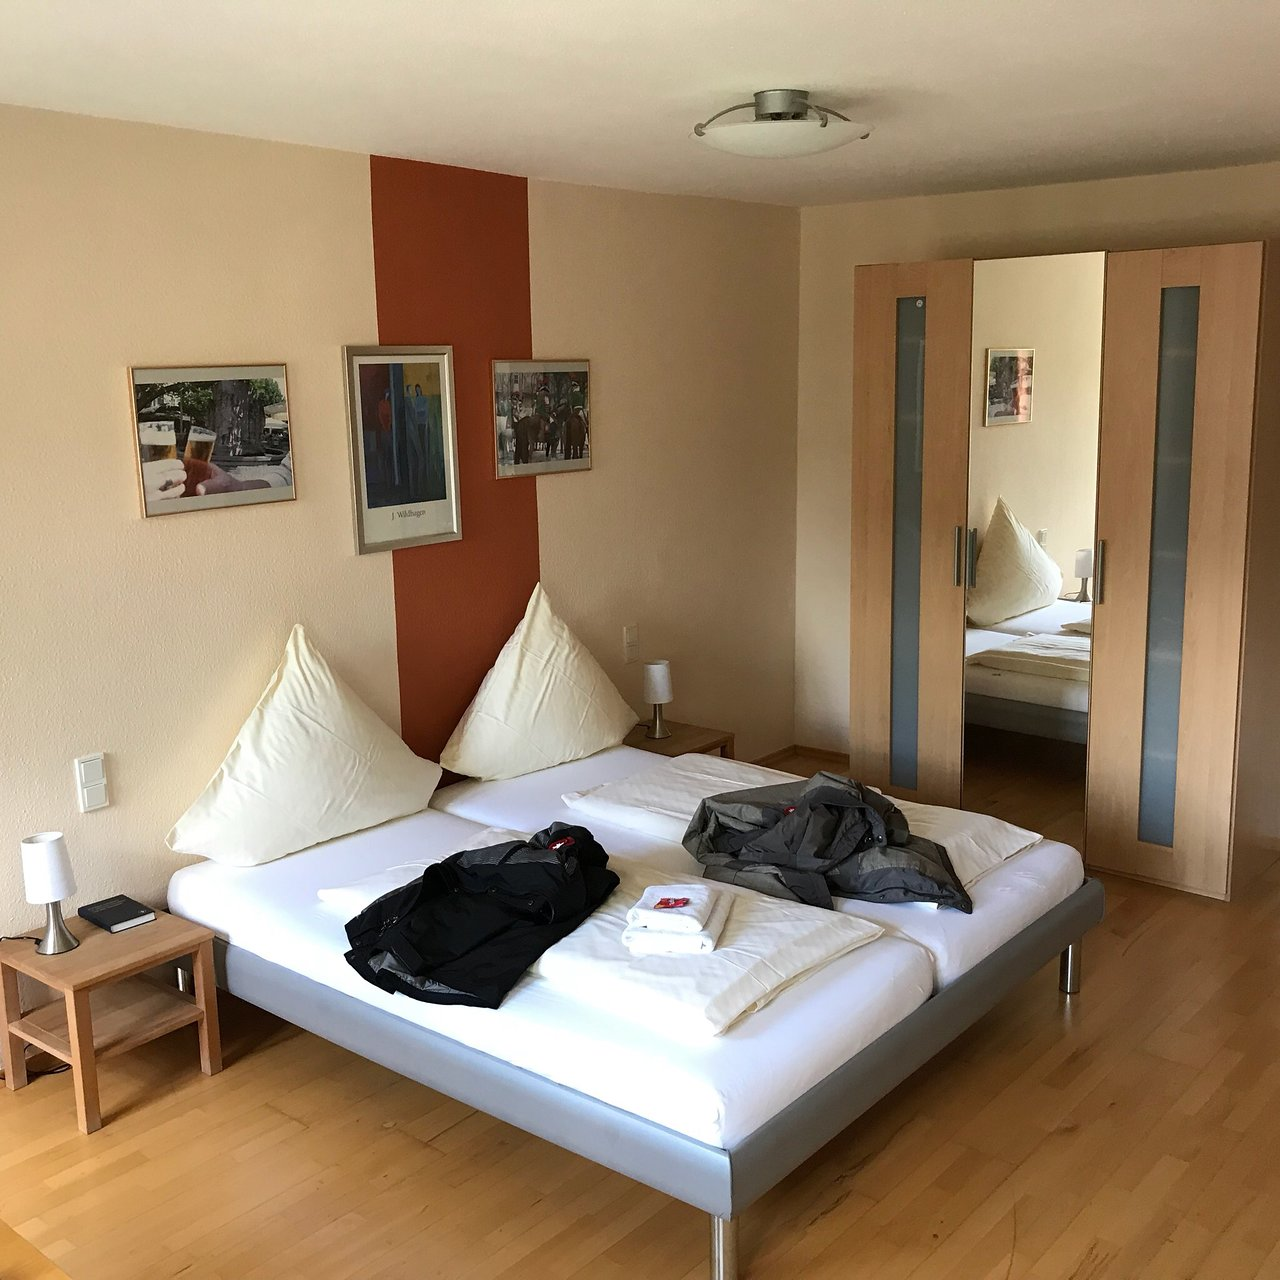 Ponchos Köln Gir Keller Hotel Reviews Cologne Germany Tripadvisor